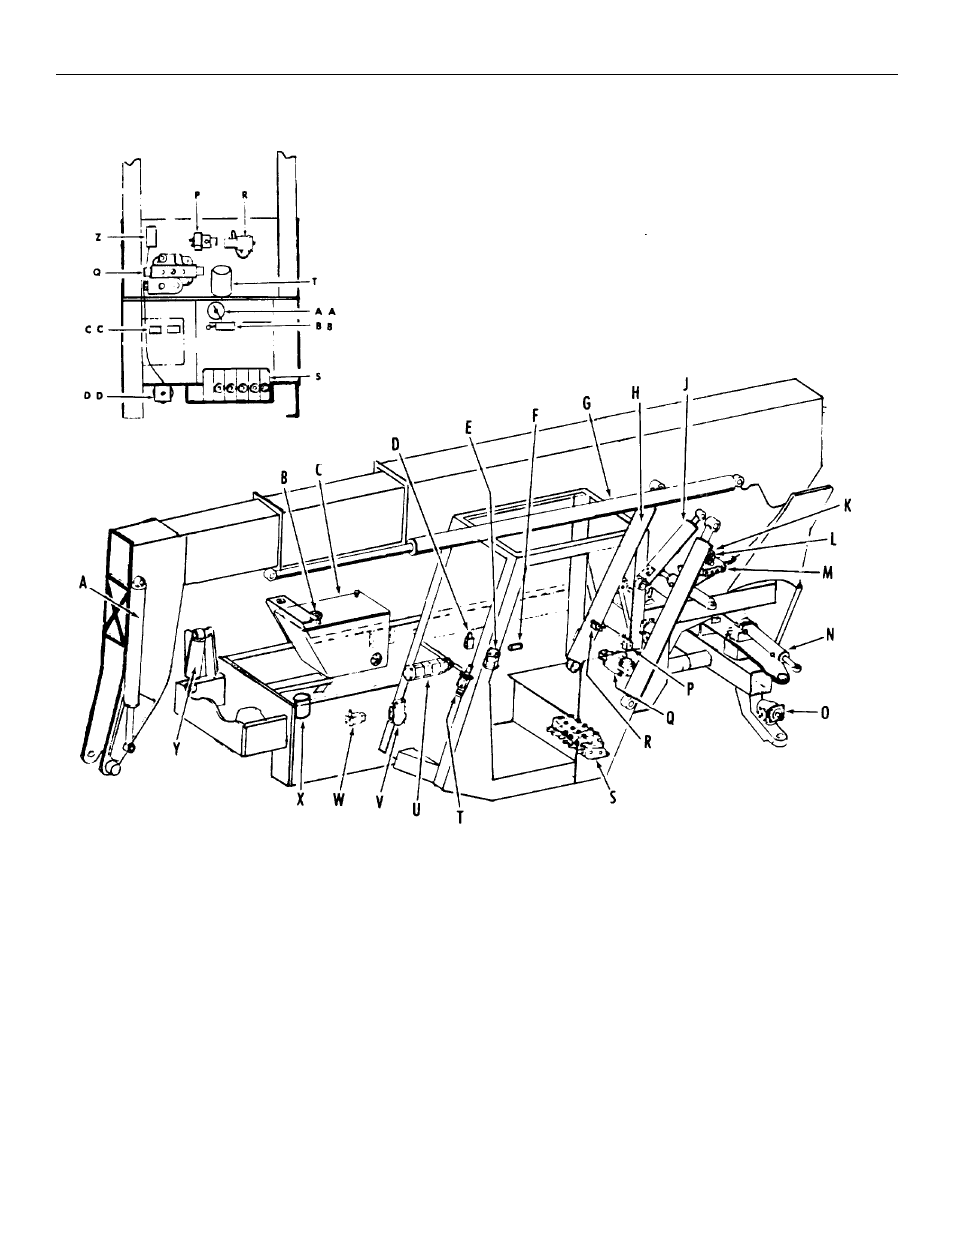 Forward Reverse Switch Wiring Diagram Solenoids For Hydraulic on